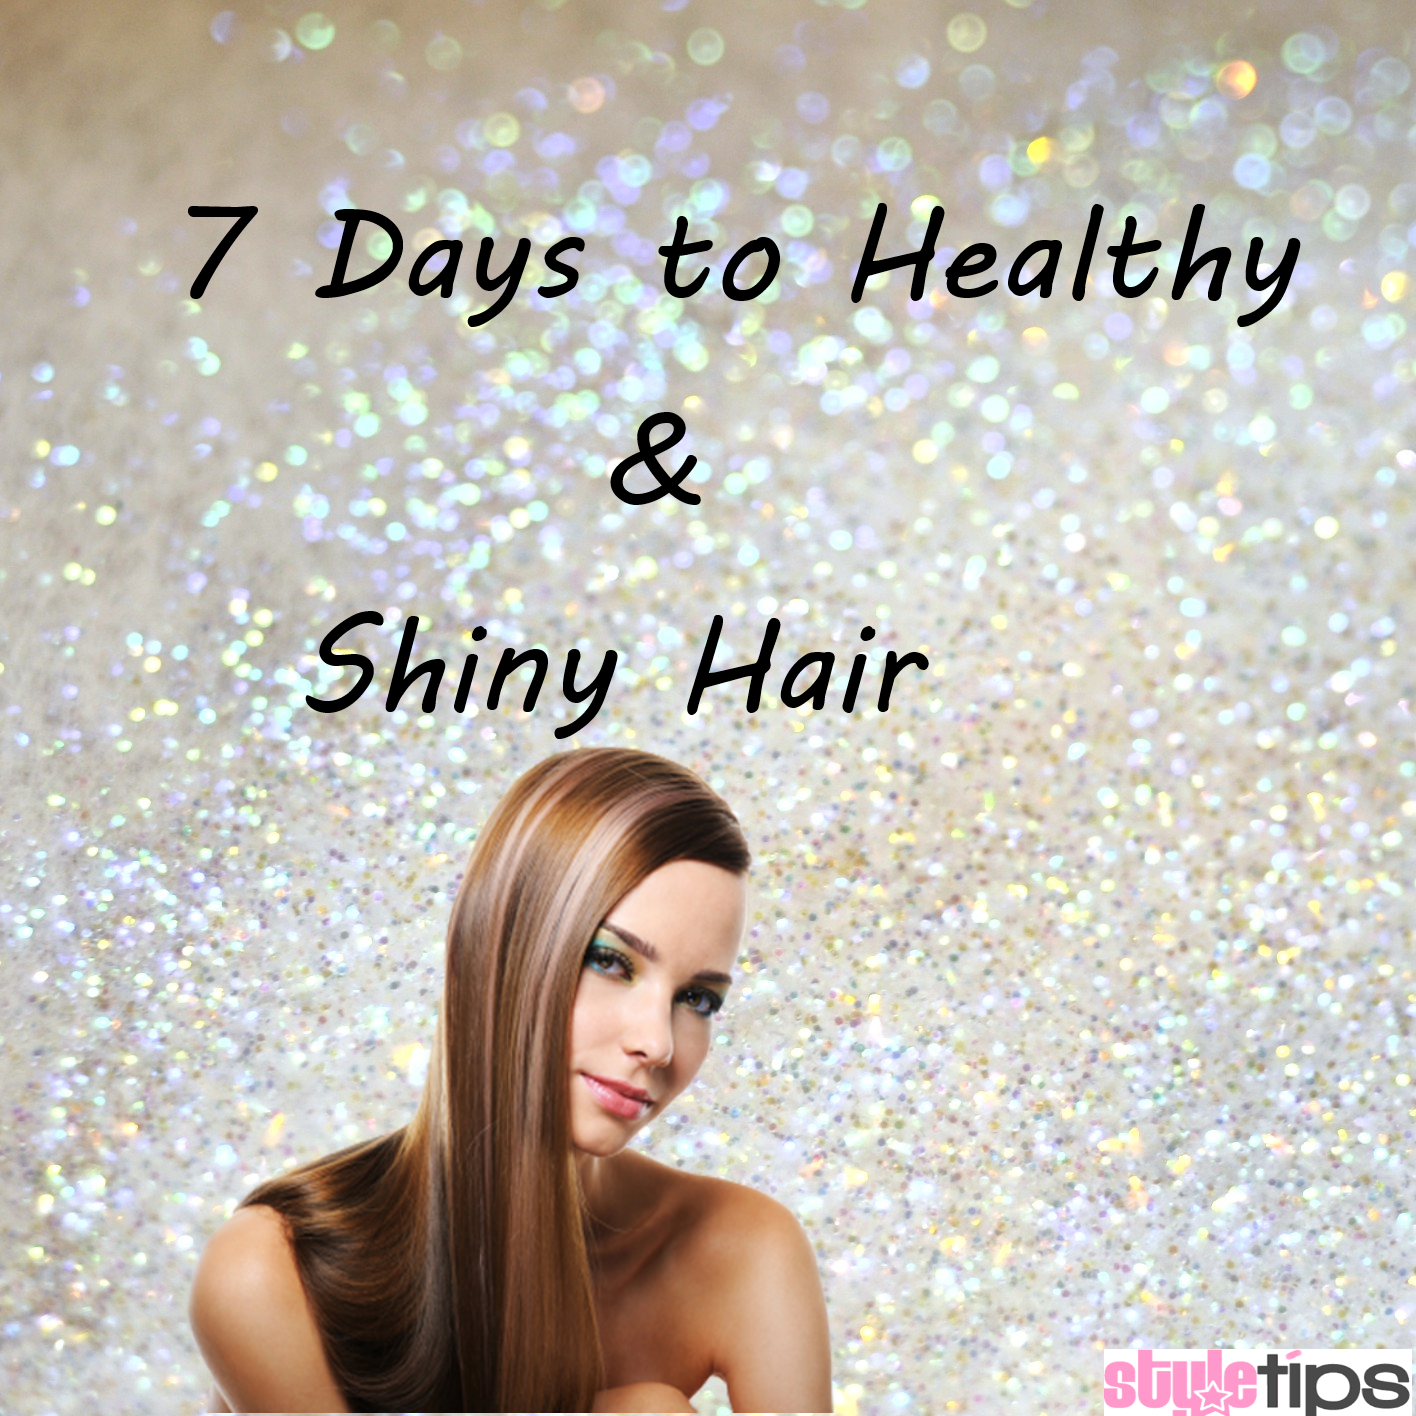 7 Steps to Shiny & Healthy Hair: The 7 Day Challenge